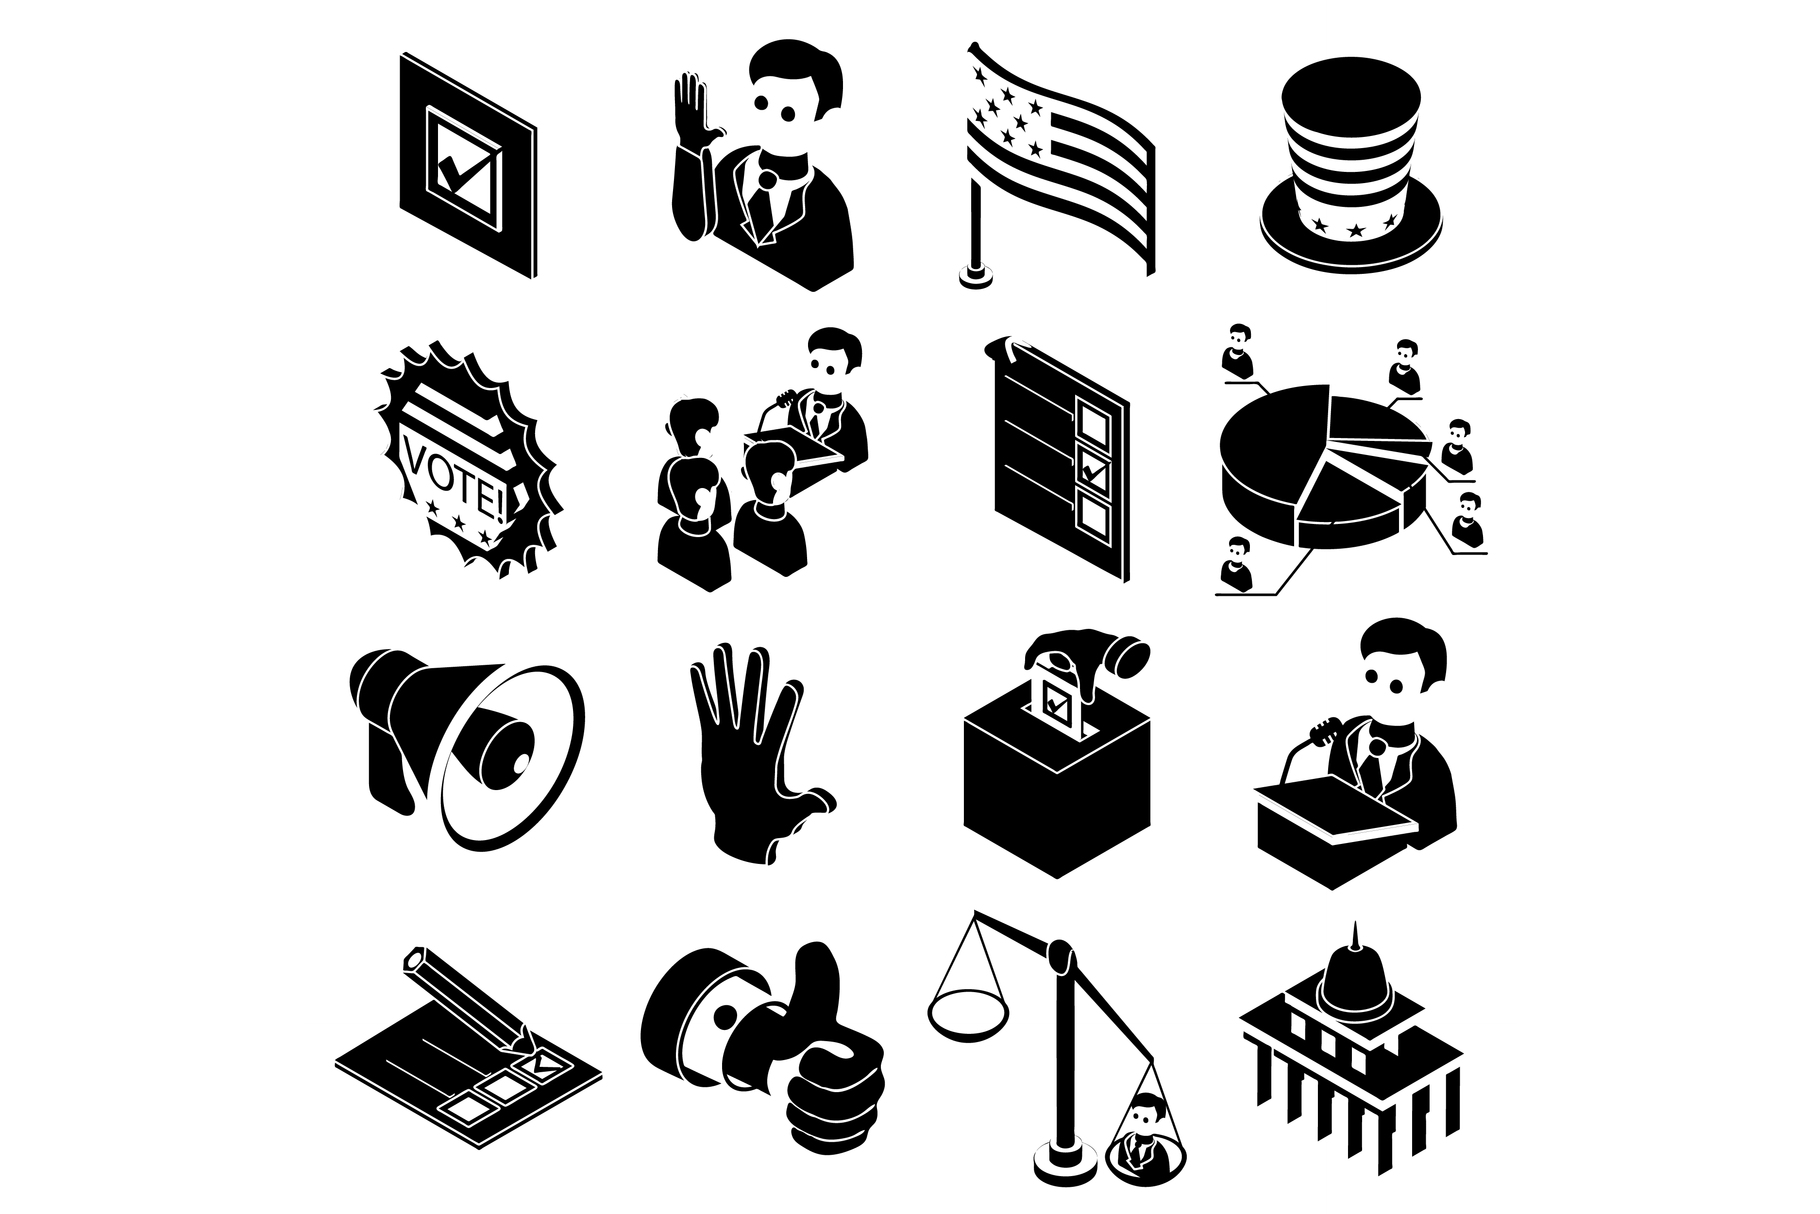 Election voting icons set, simple style example image 1